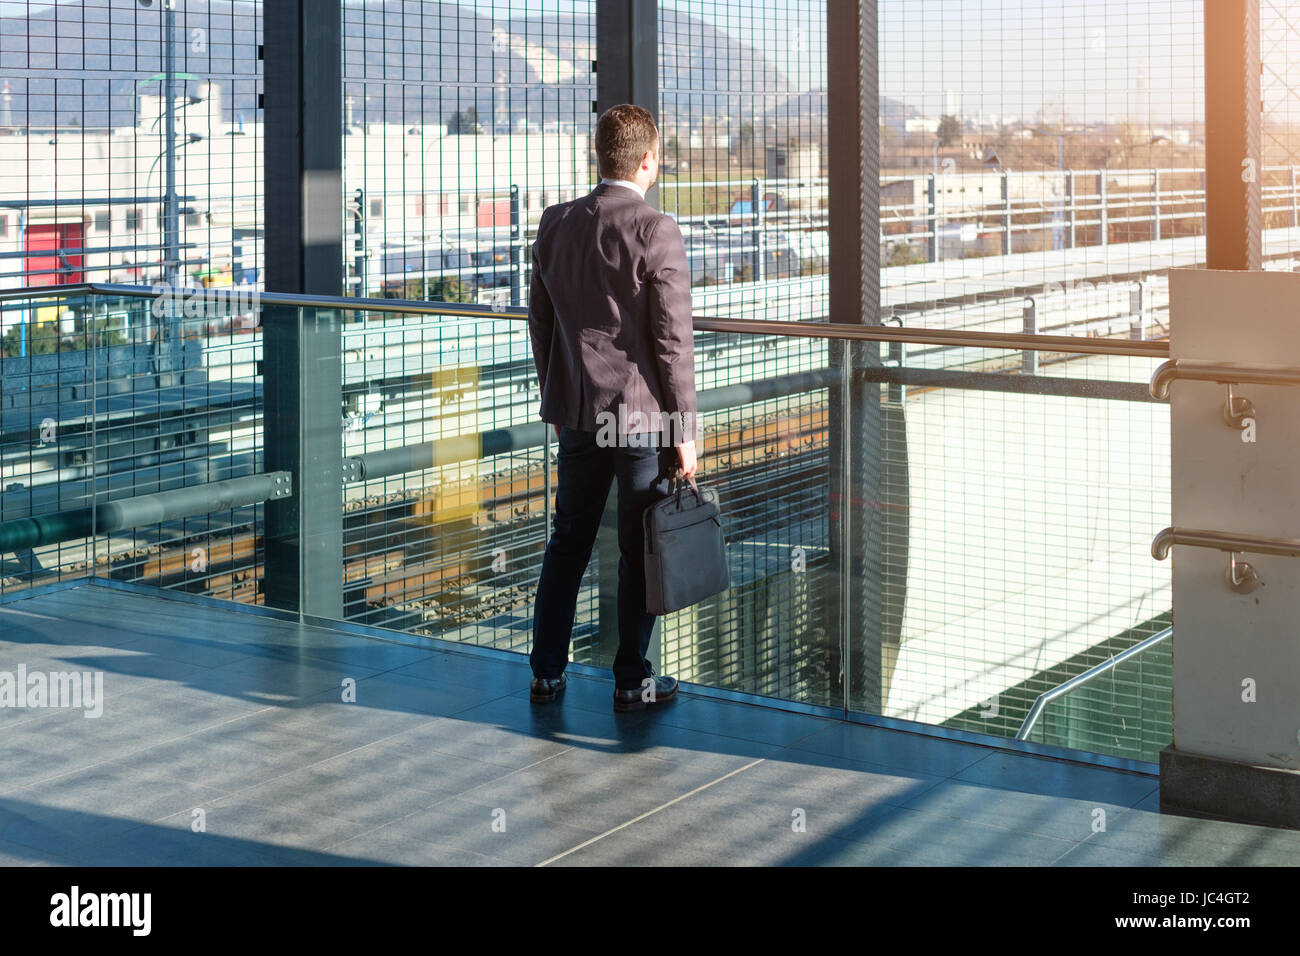 Businessman commuter is traveling and he is sad and tired alone - Stock Image